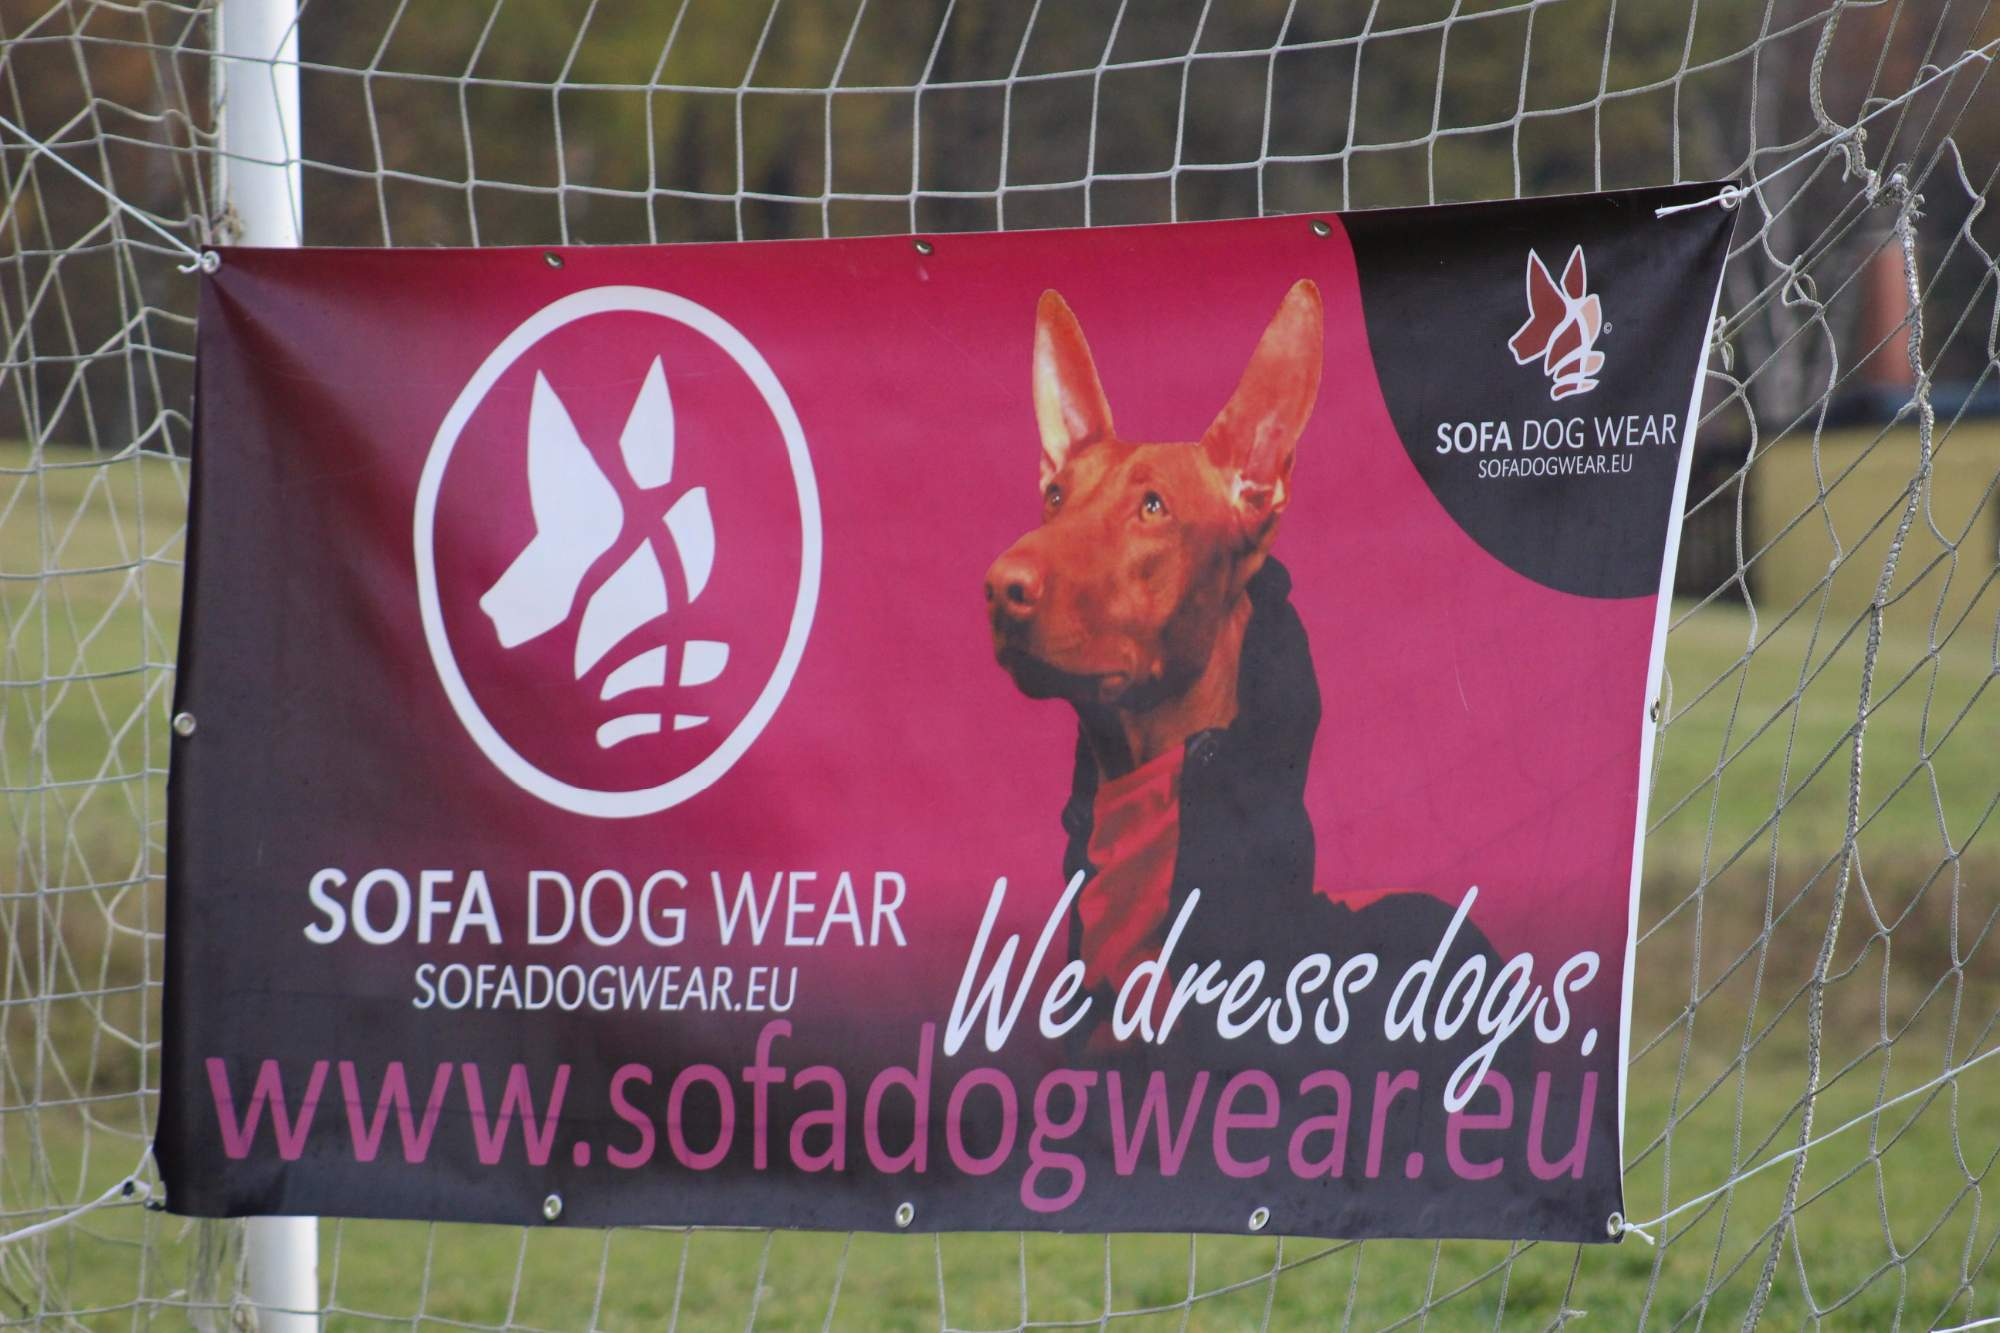 Sofa Dof Wear Cup - Nechrti